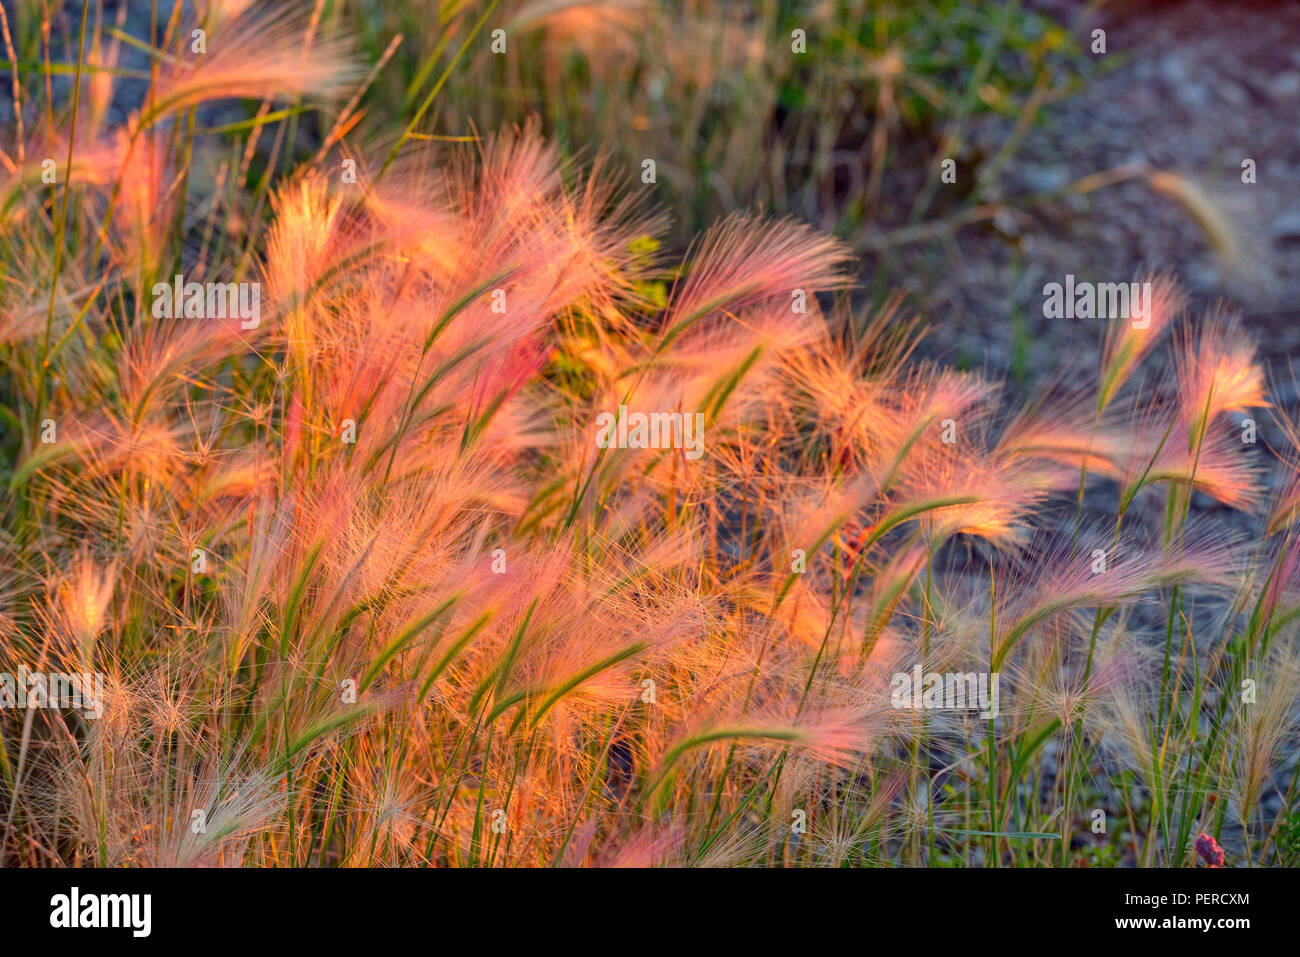 Foxtail barley in the setting sun light, Fort Providence, Northwest Territories, Canada - Stock Image